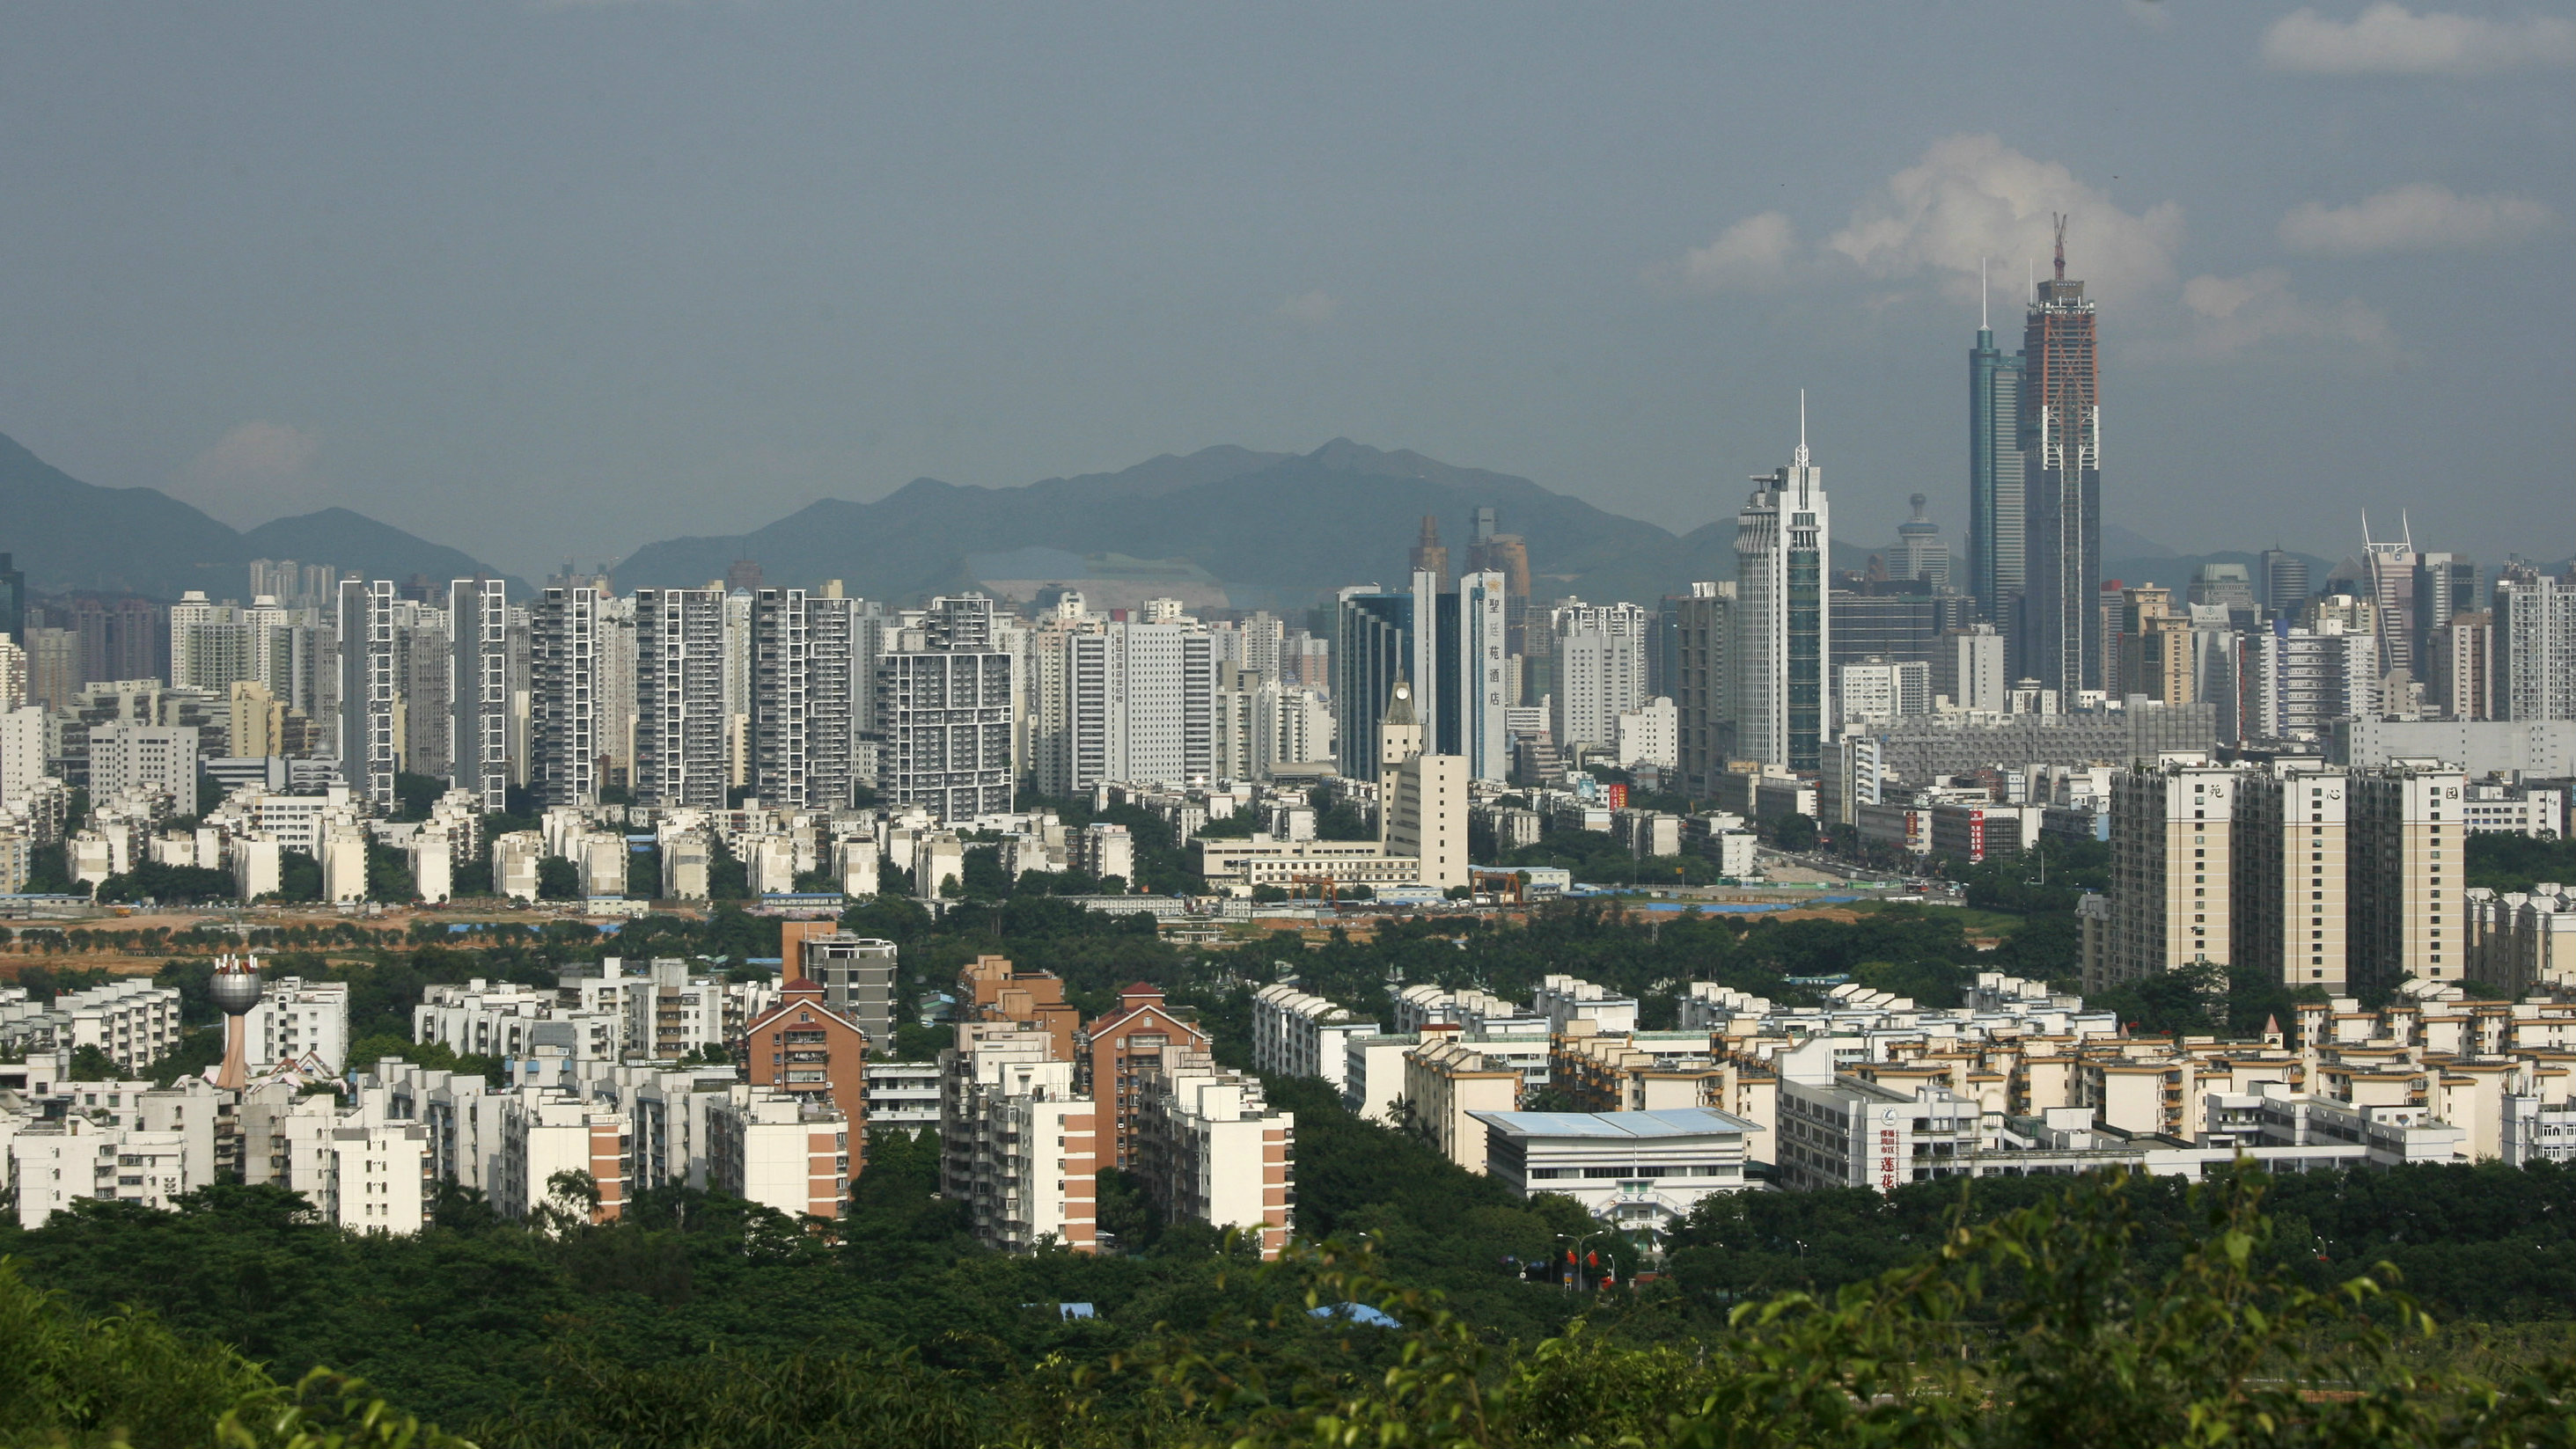 Shenzhen, China's hardware manufacturing hub.